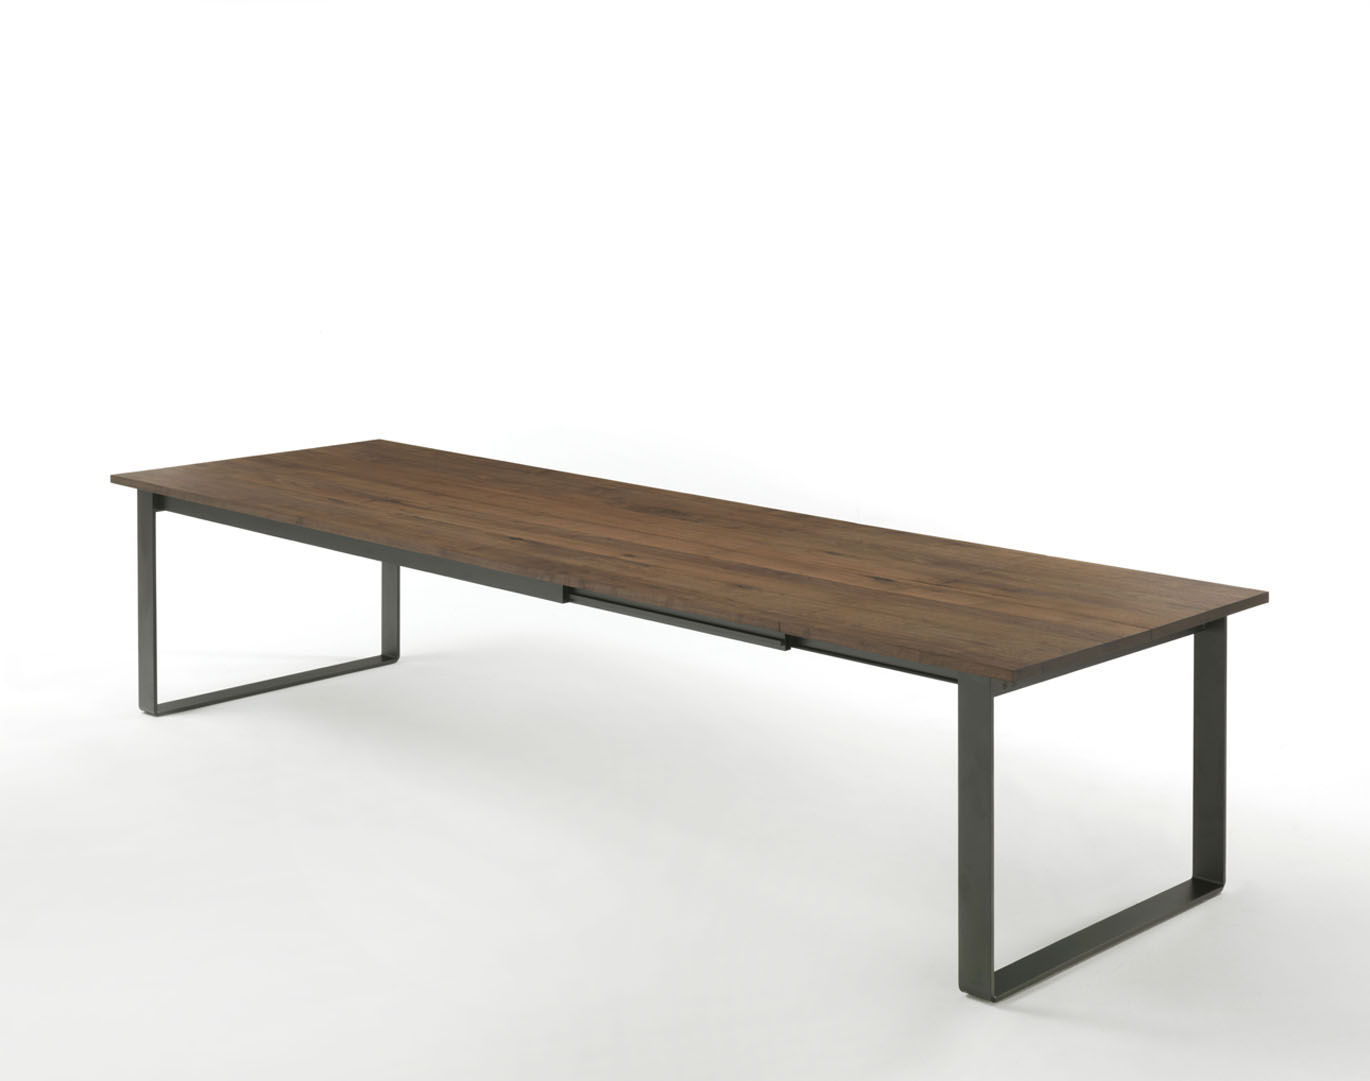 Infinity table, CR&S Riva, Riva1920